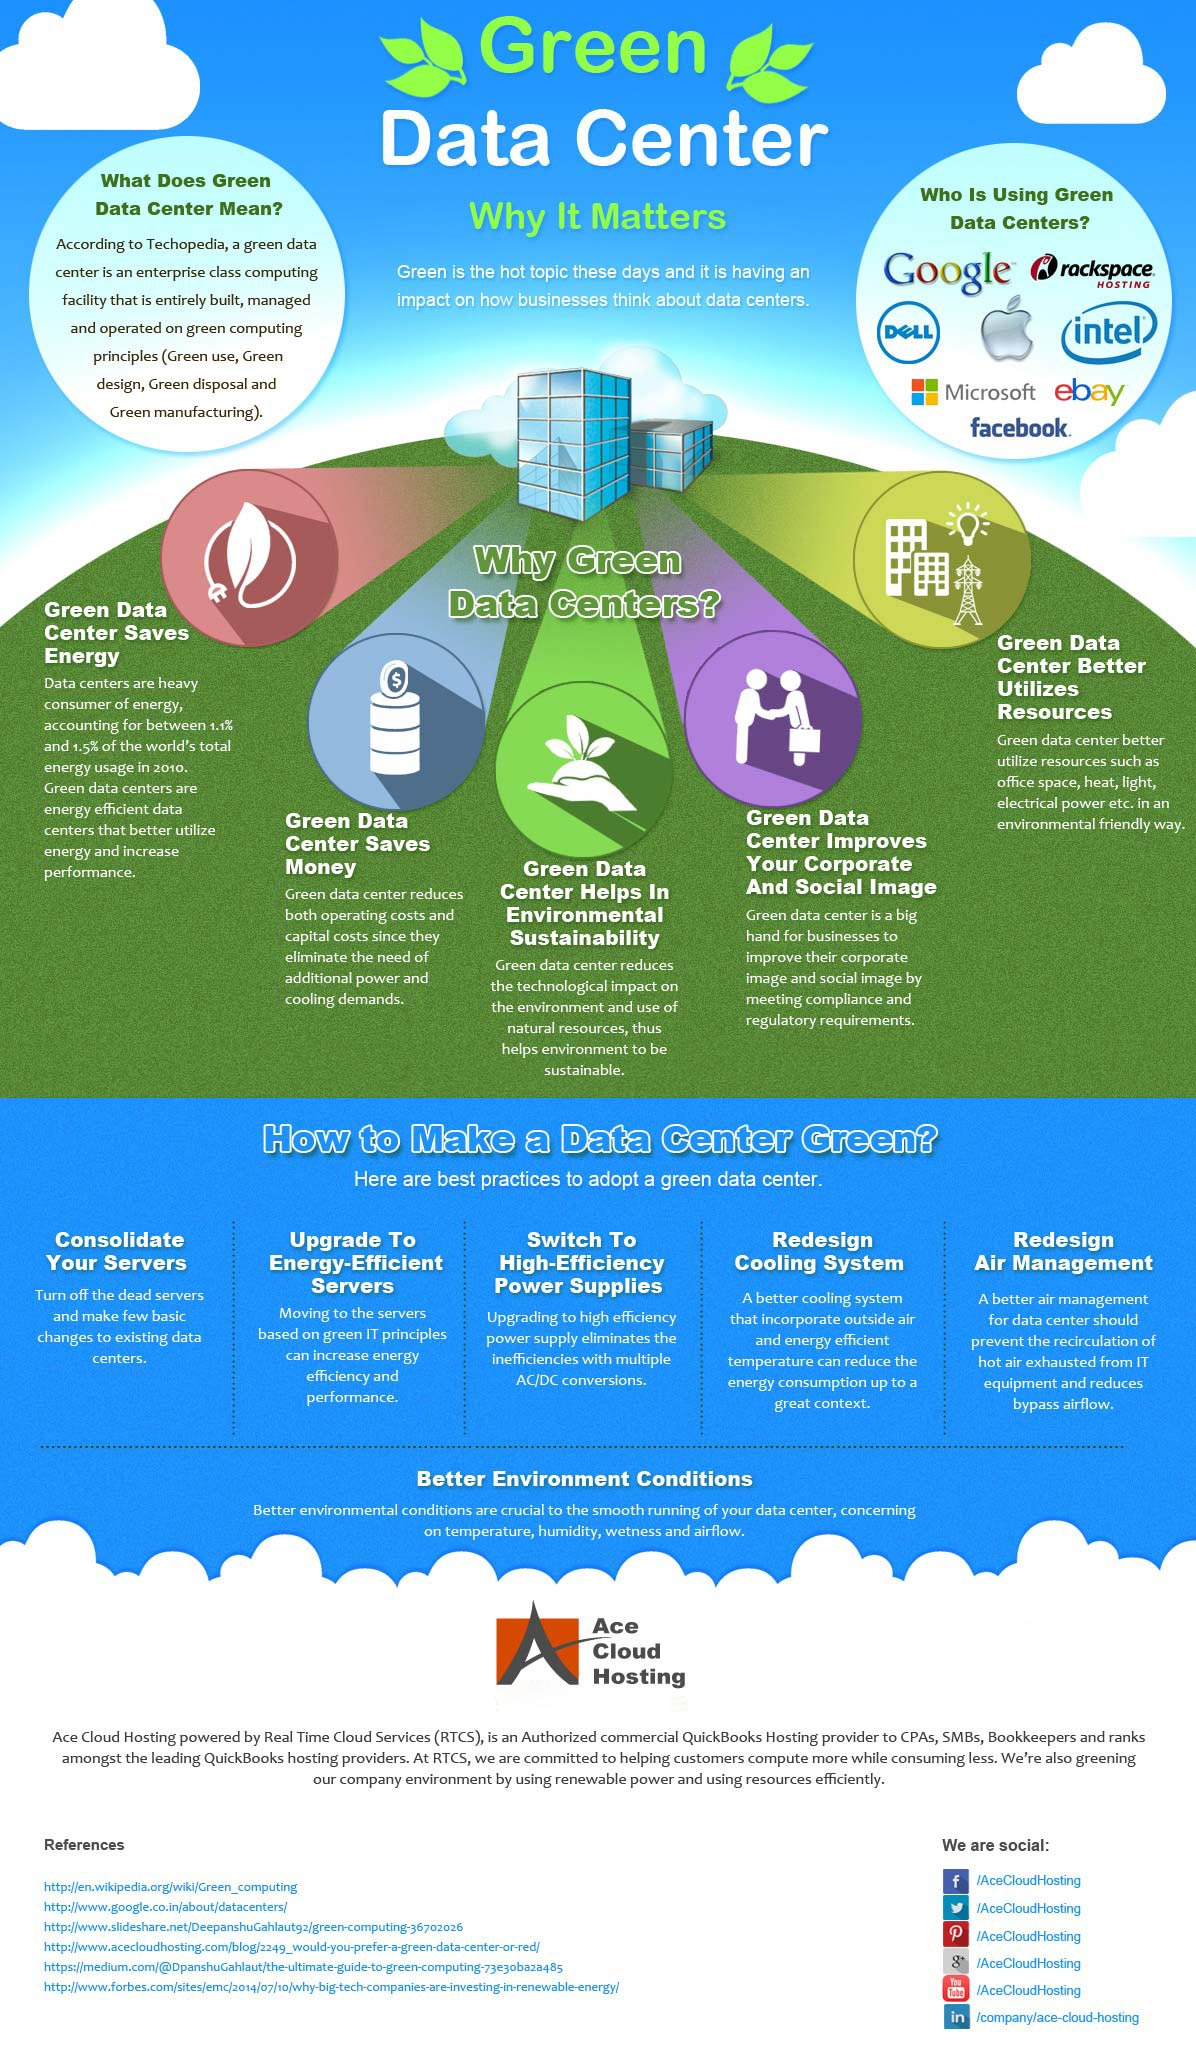 Green Data Center Why It Matters Infographic